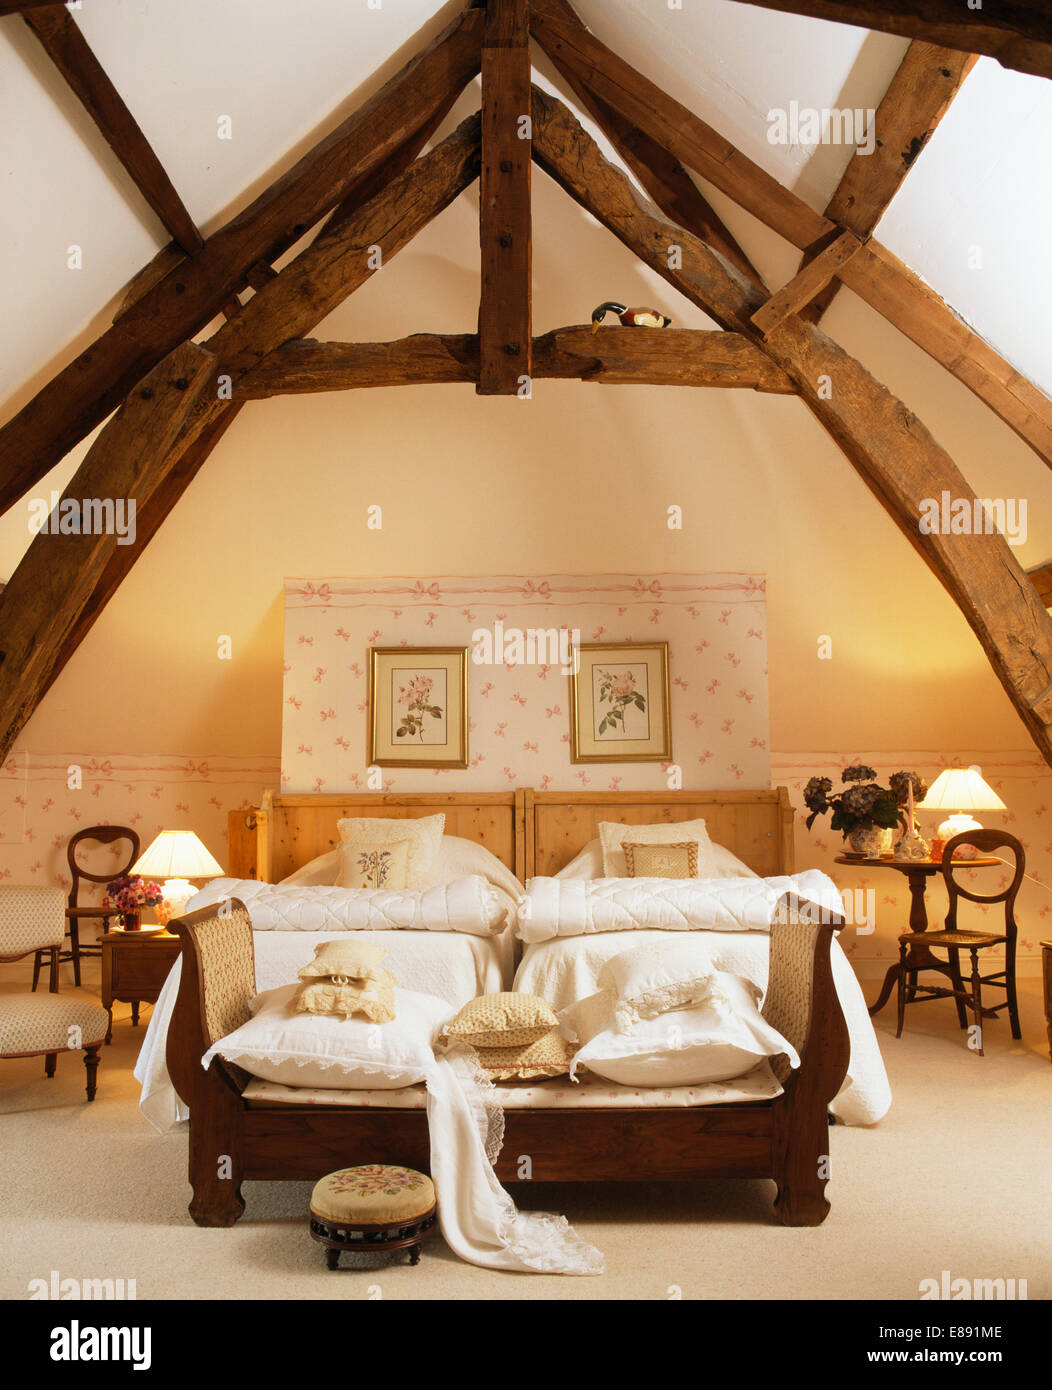 High, Beamed Apex Ceiling In French Country Bedroom With Sofa At The Foot  Of Twin Beds With White Quilts